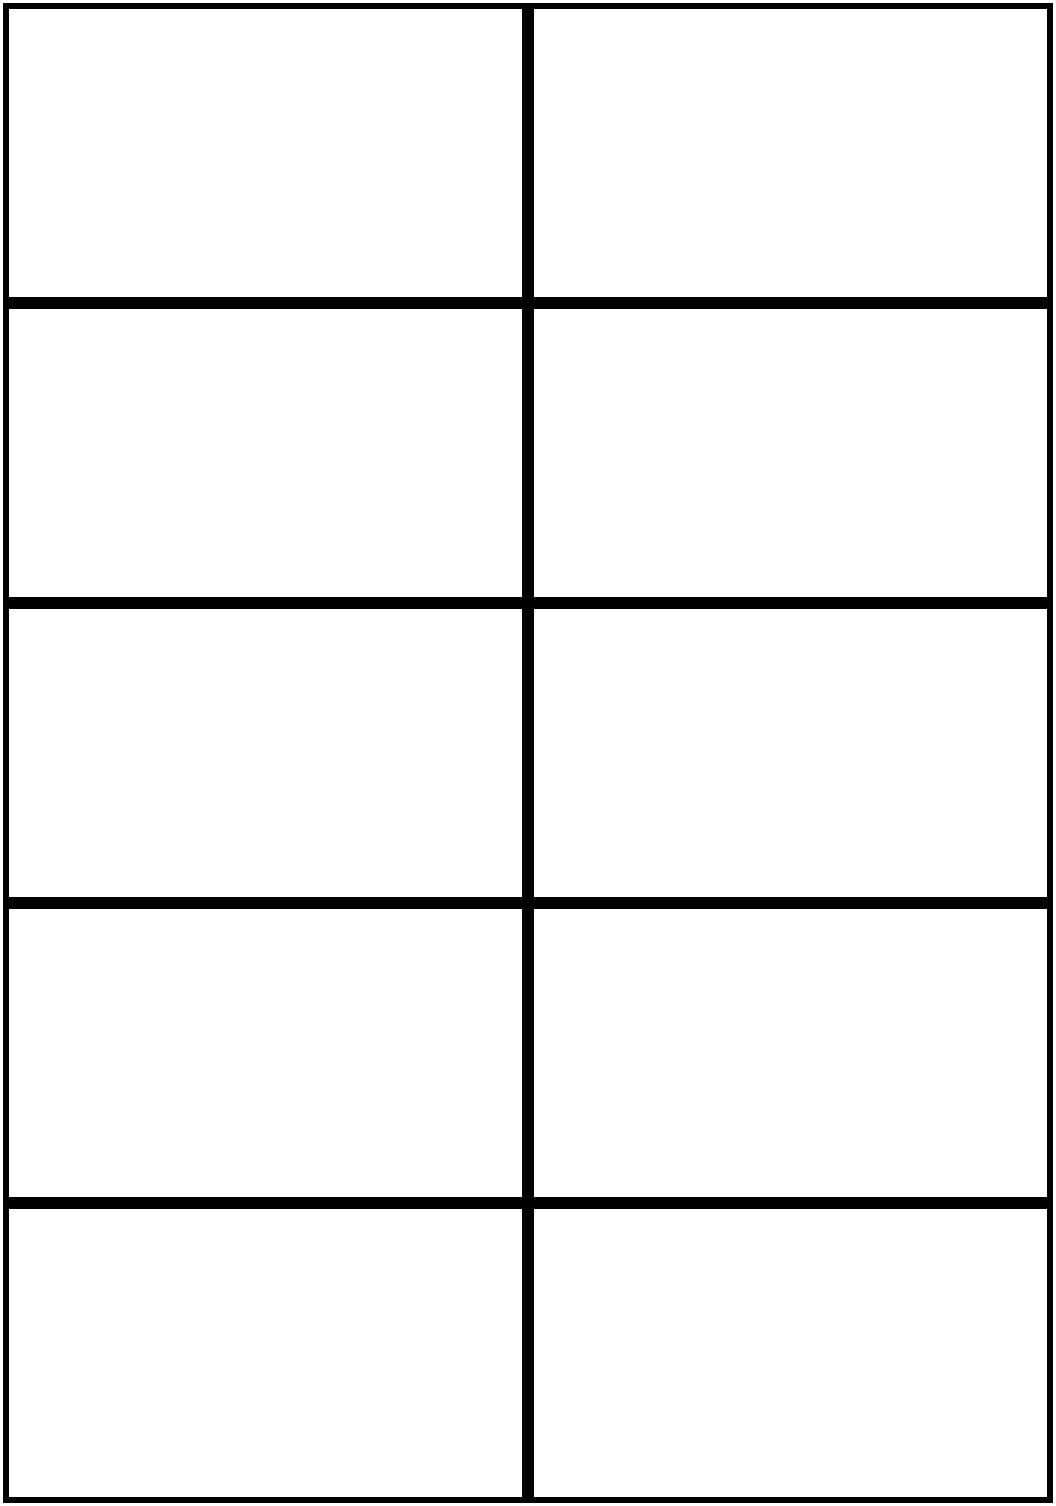 Image Result For Flashcards Template Word | Worksheets | Free - Free Printable Card Templates